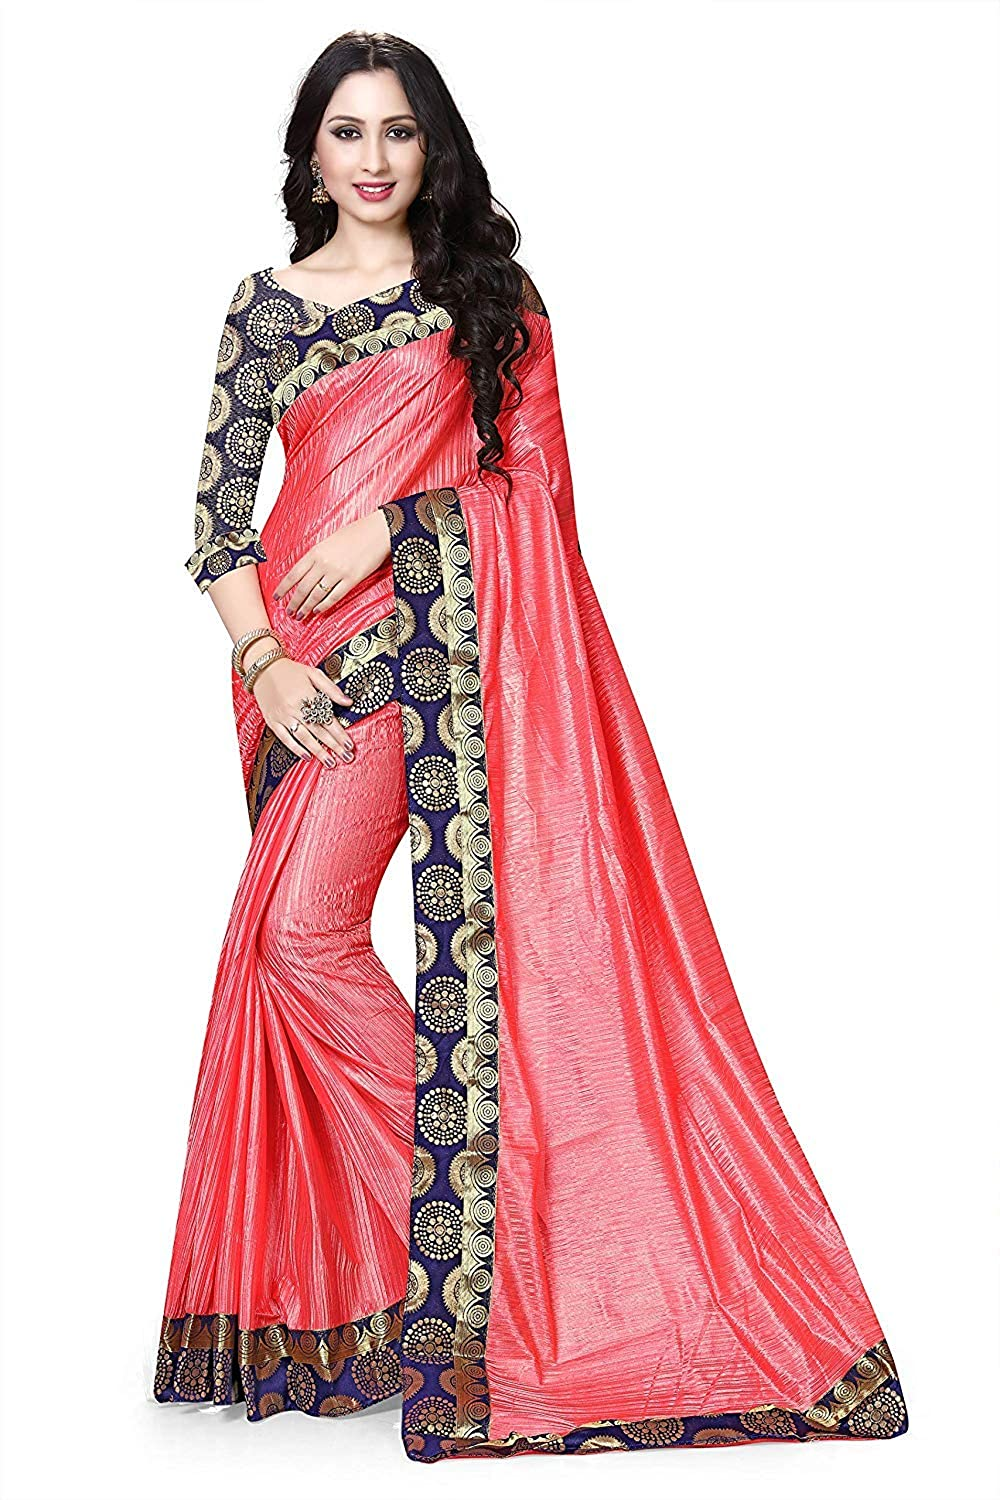 Sarees For Women Party Wear Half Sarees Offer Designer Below 500 Rupees Latest Design Under 300 Combo Art Silk New Collection 2018-2019 In Latest With Designer Blouse Beautiful For Women Party Wear Sadi Offer Sarees Collection Kanchipuram Bollywood Bhagalpuri Embroidered Free Size Georgette Sari Mirror Work Marriage Wear Replica Sarees Wedding Casual Design With Blouse Material